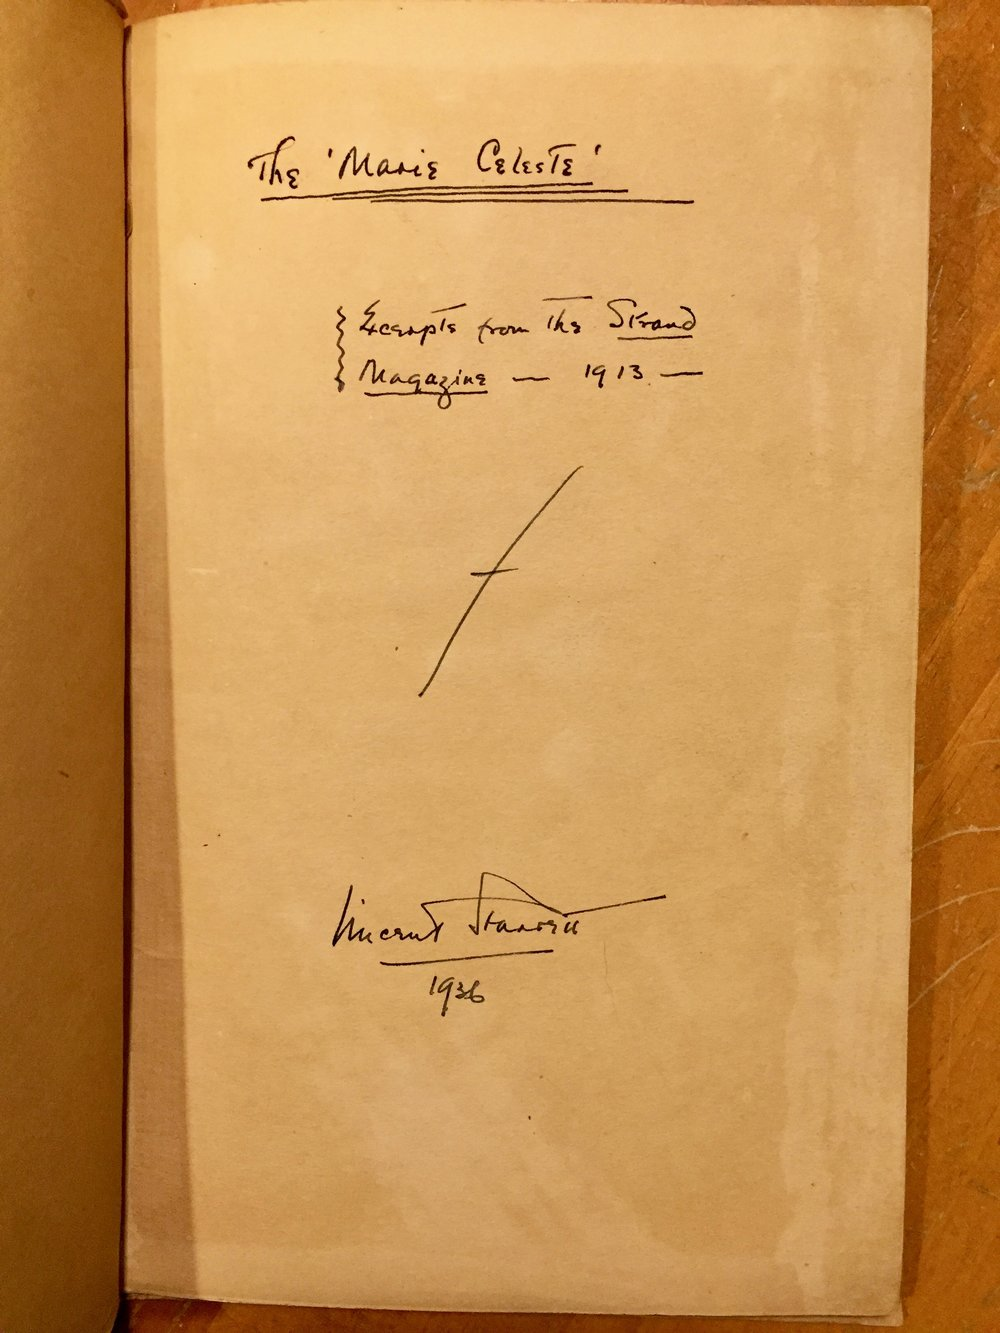 The hand written title page.